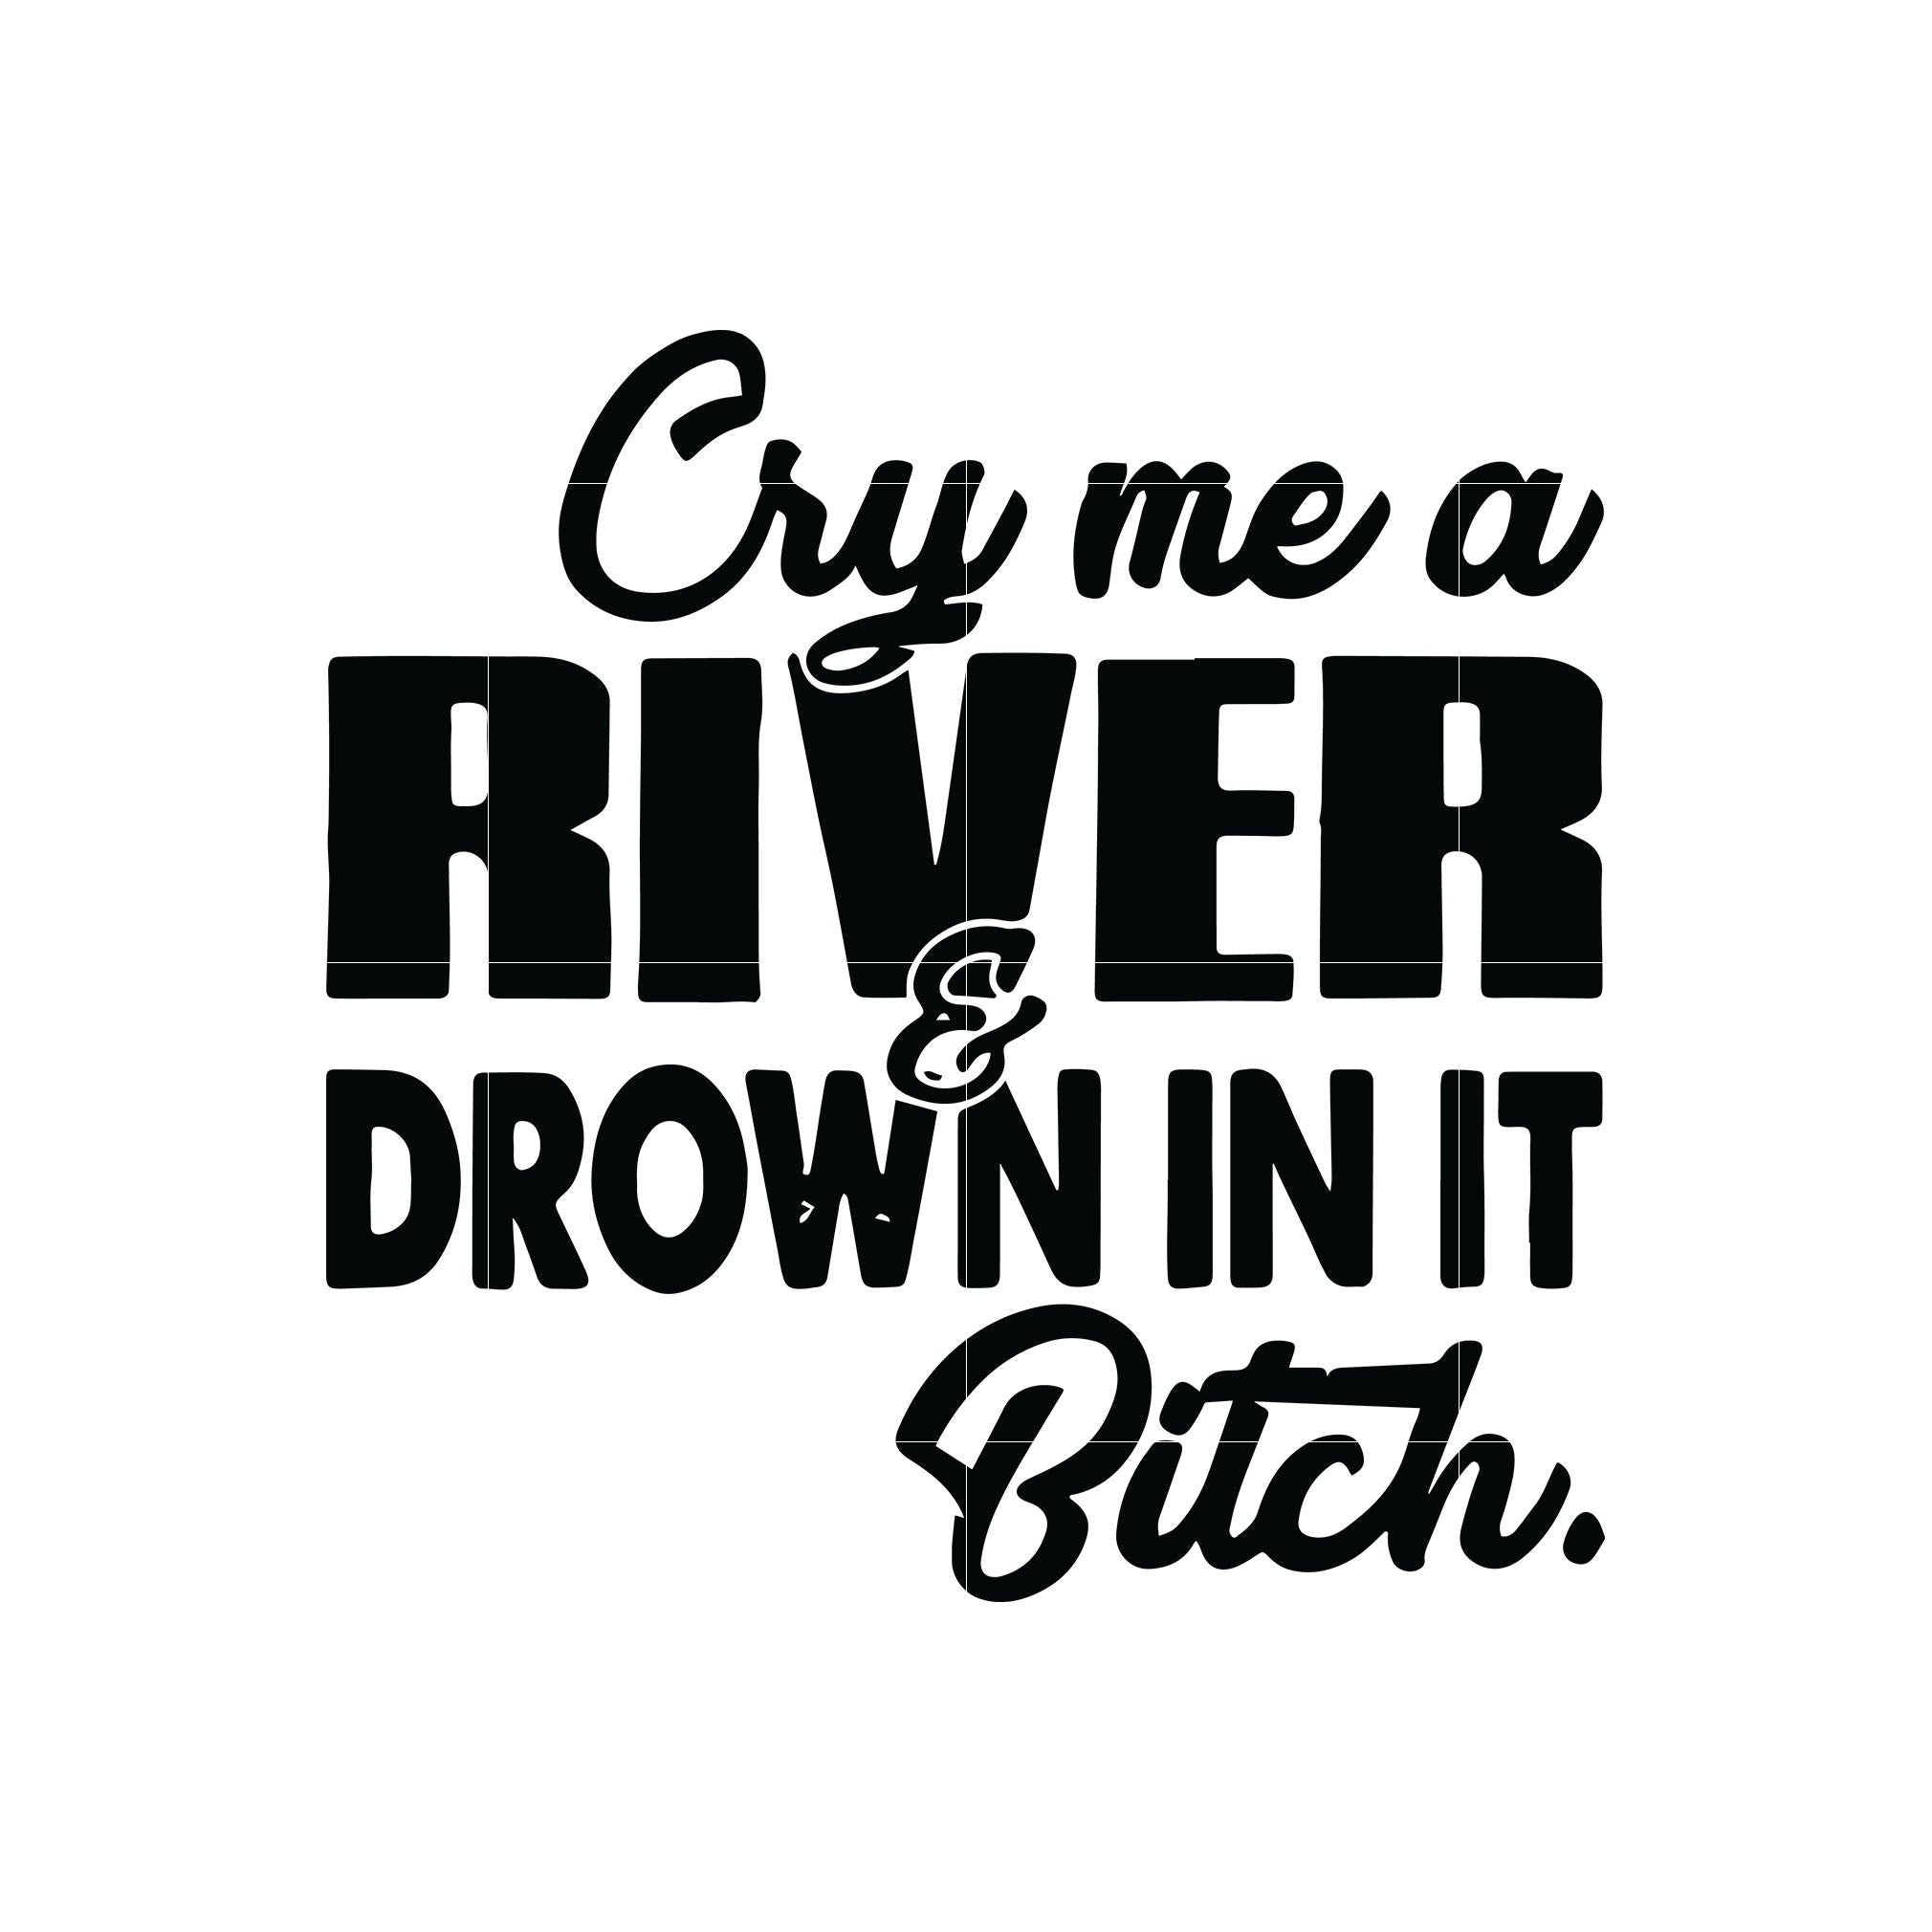 Cry me a river drown in it bitch svg ,dxf,eps,png digital file